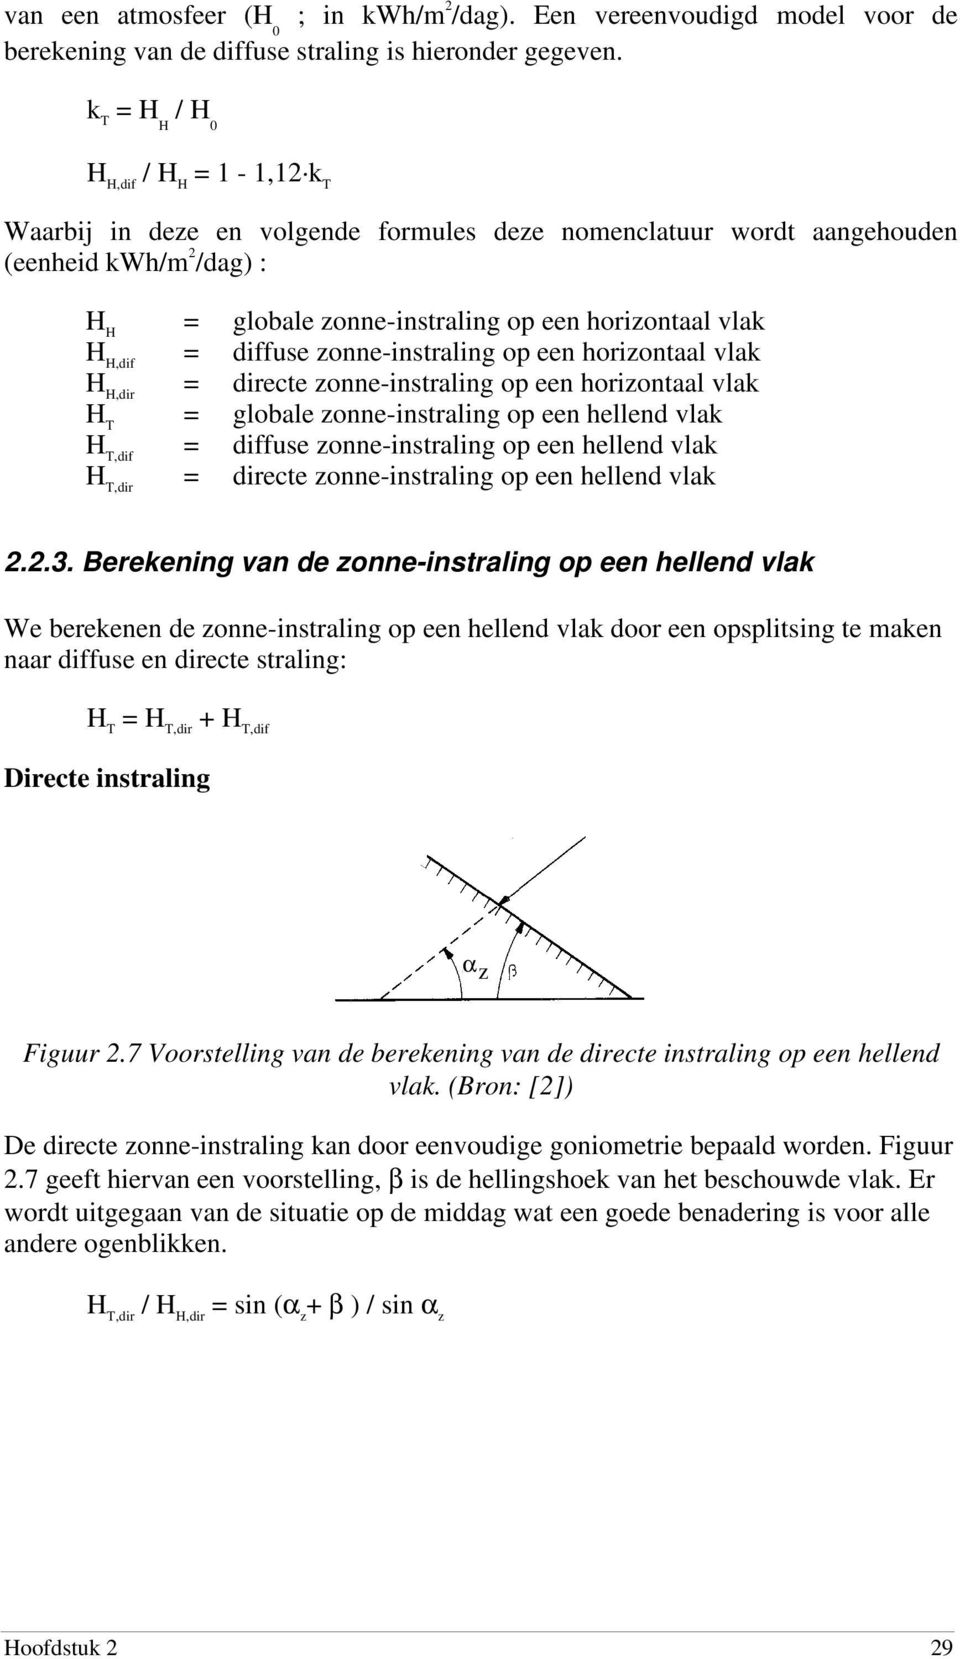 H,dif = diffuse zonne-instraling op een horizontaal vlak H H,dir = directe zonne-instraling op een horizontaal vlak H T = globale zonne-instraling op een hellend vlak H T,dif = diffuse